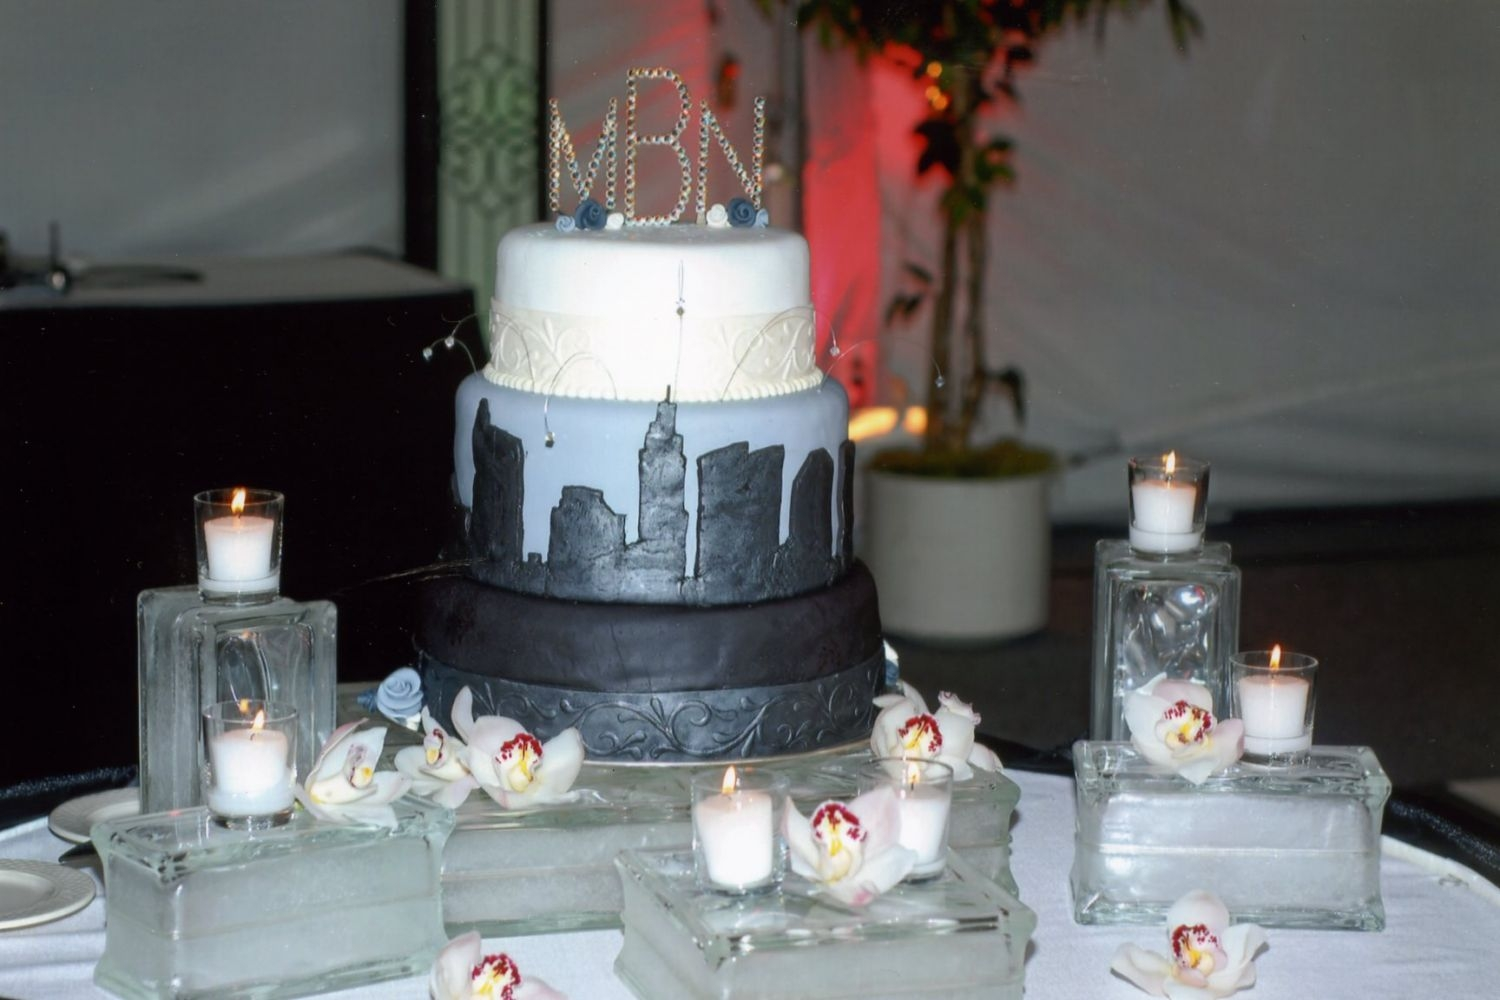 Nate & Muriel's Wedding Cake This is only the second wedding cake I have done, it was for my brothers wedding. The wedding was completely black & white with hot...